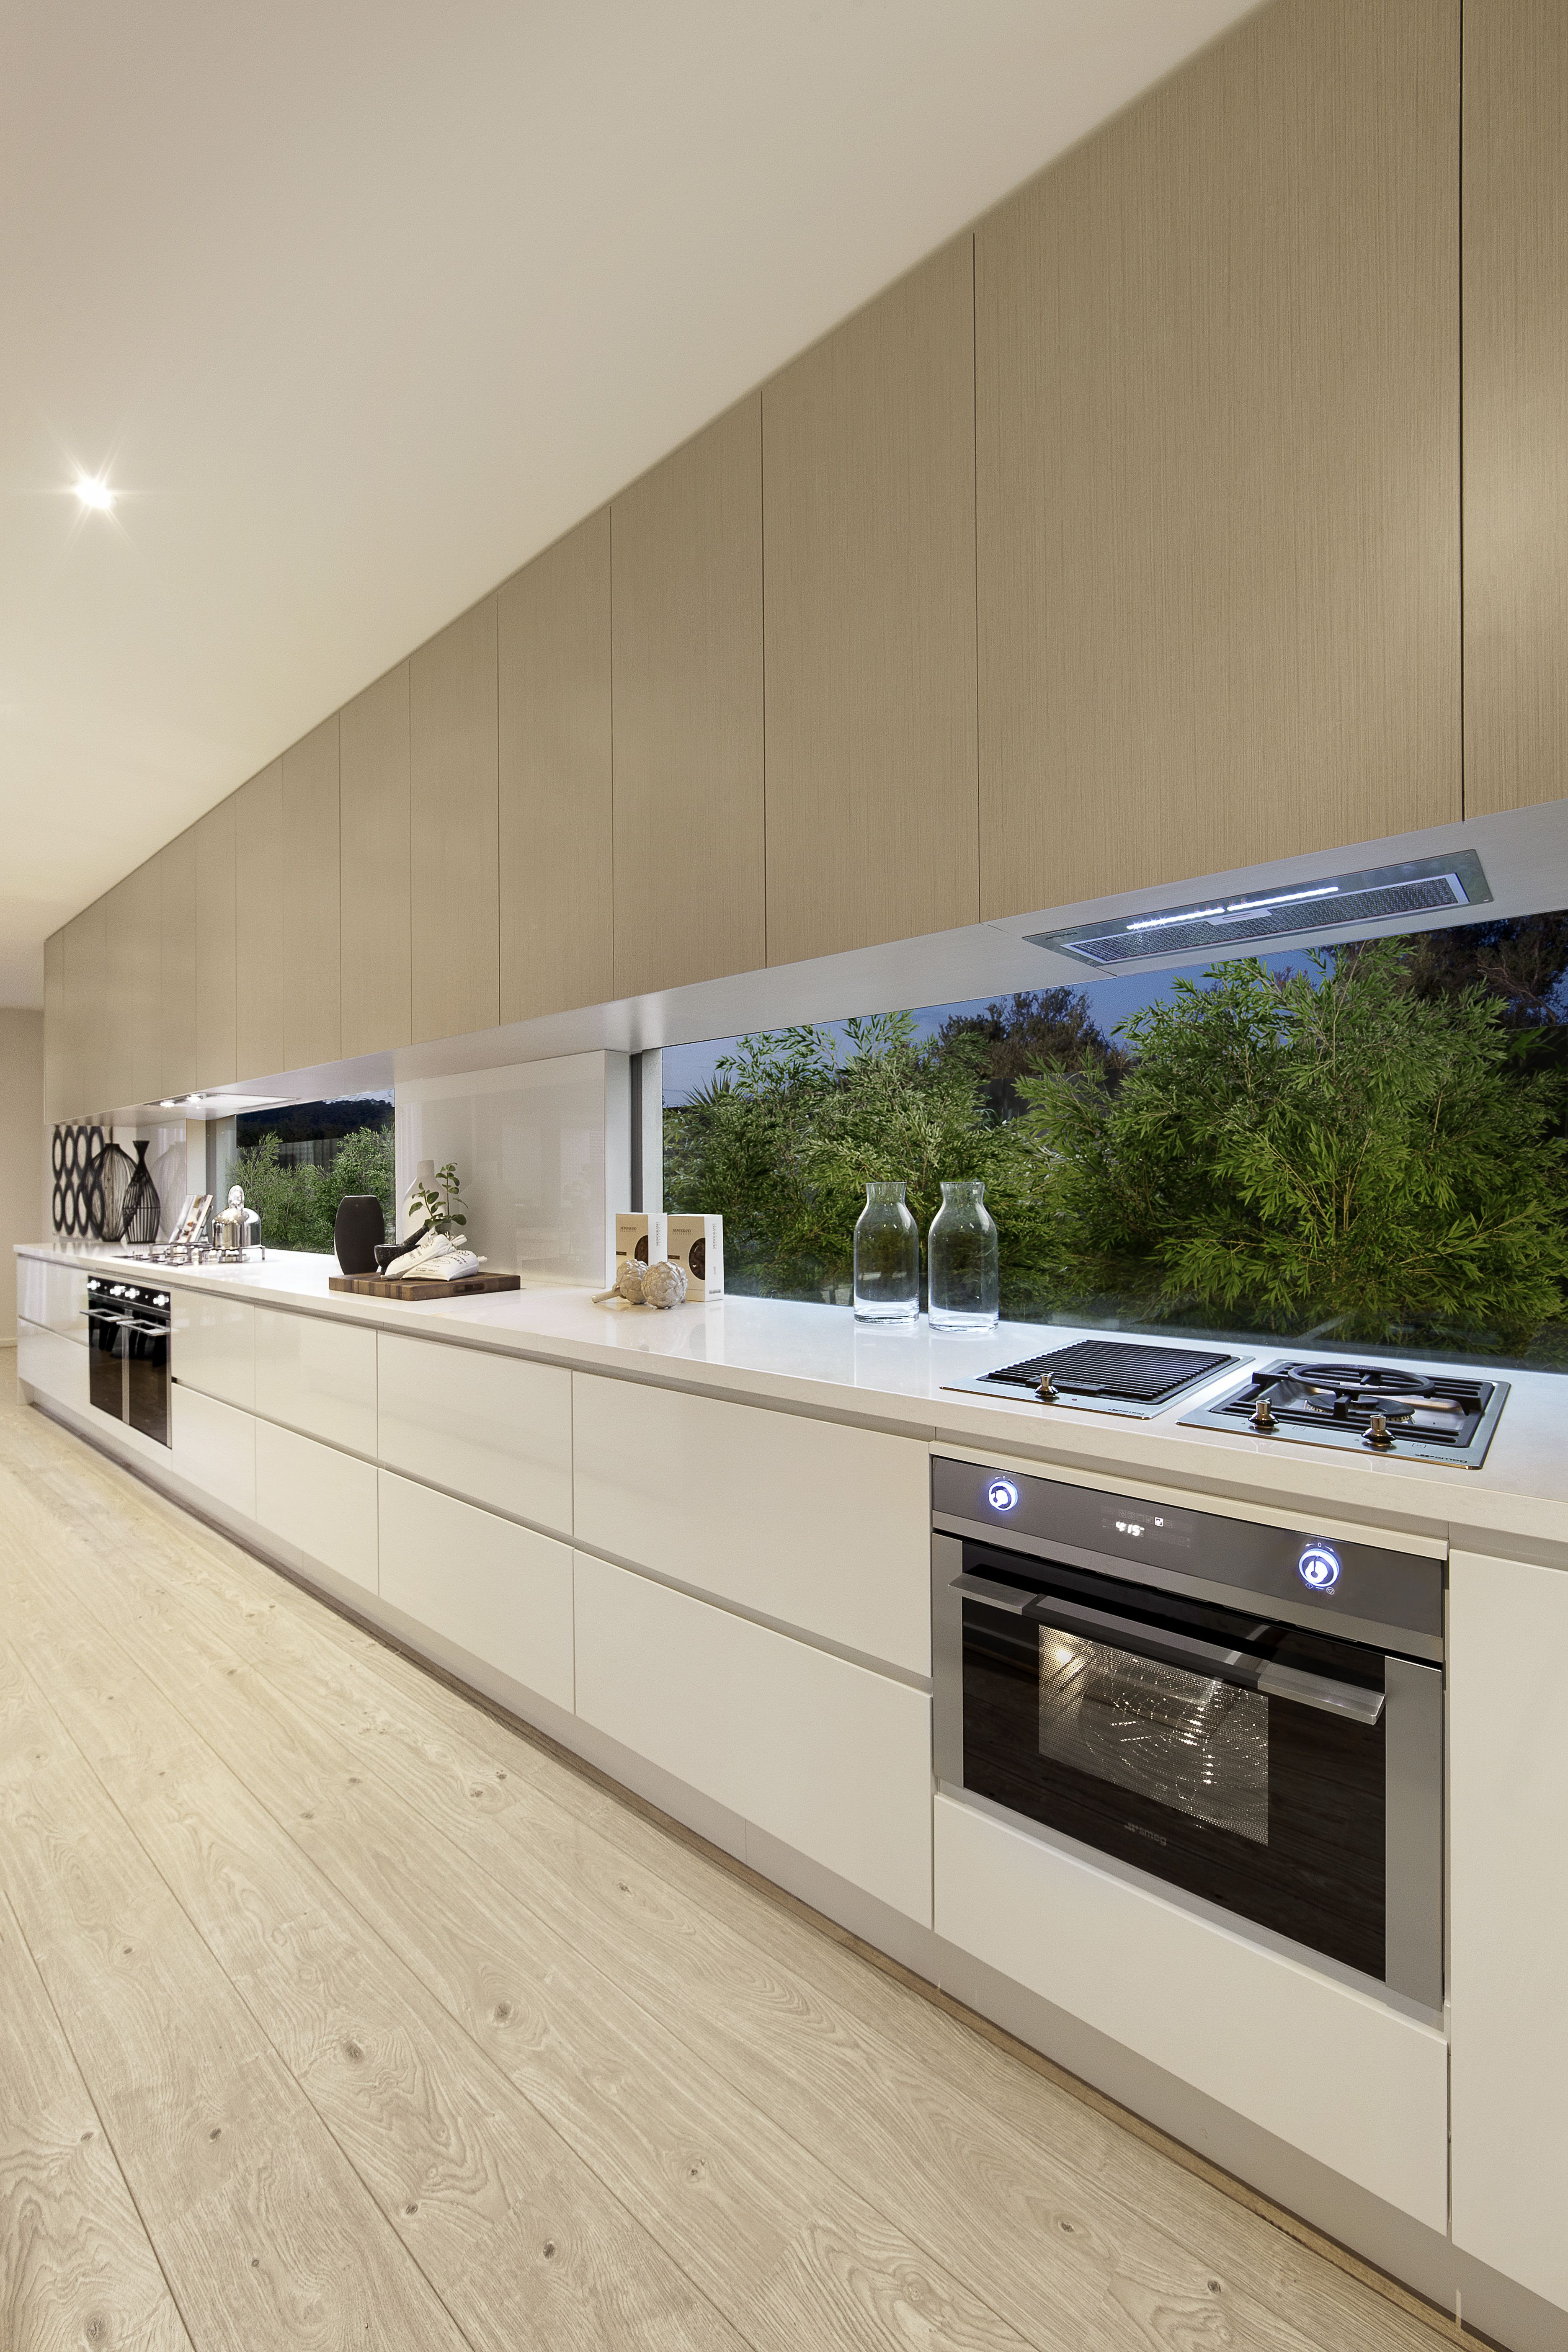 Clear Glass Backsplash This Flawless Kitchen Embraces Natural Light Through The Clear